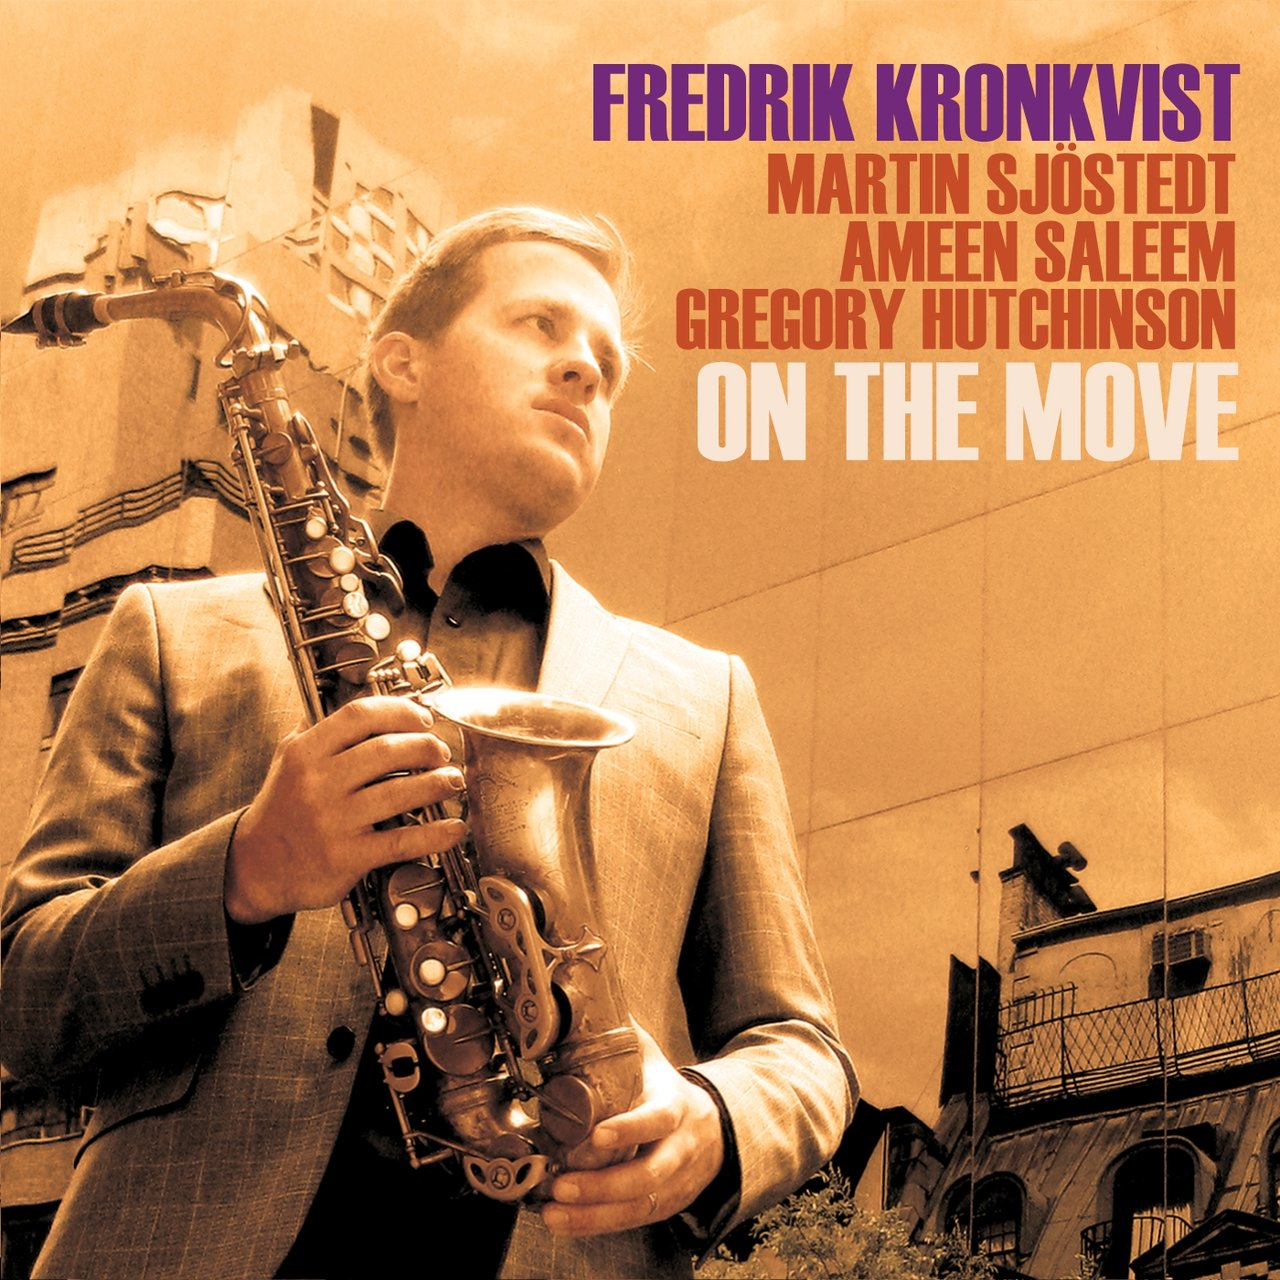 On the Move (feat. Martin Sjöstedt, Ameen Saleem & Gregory Hutchinson)